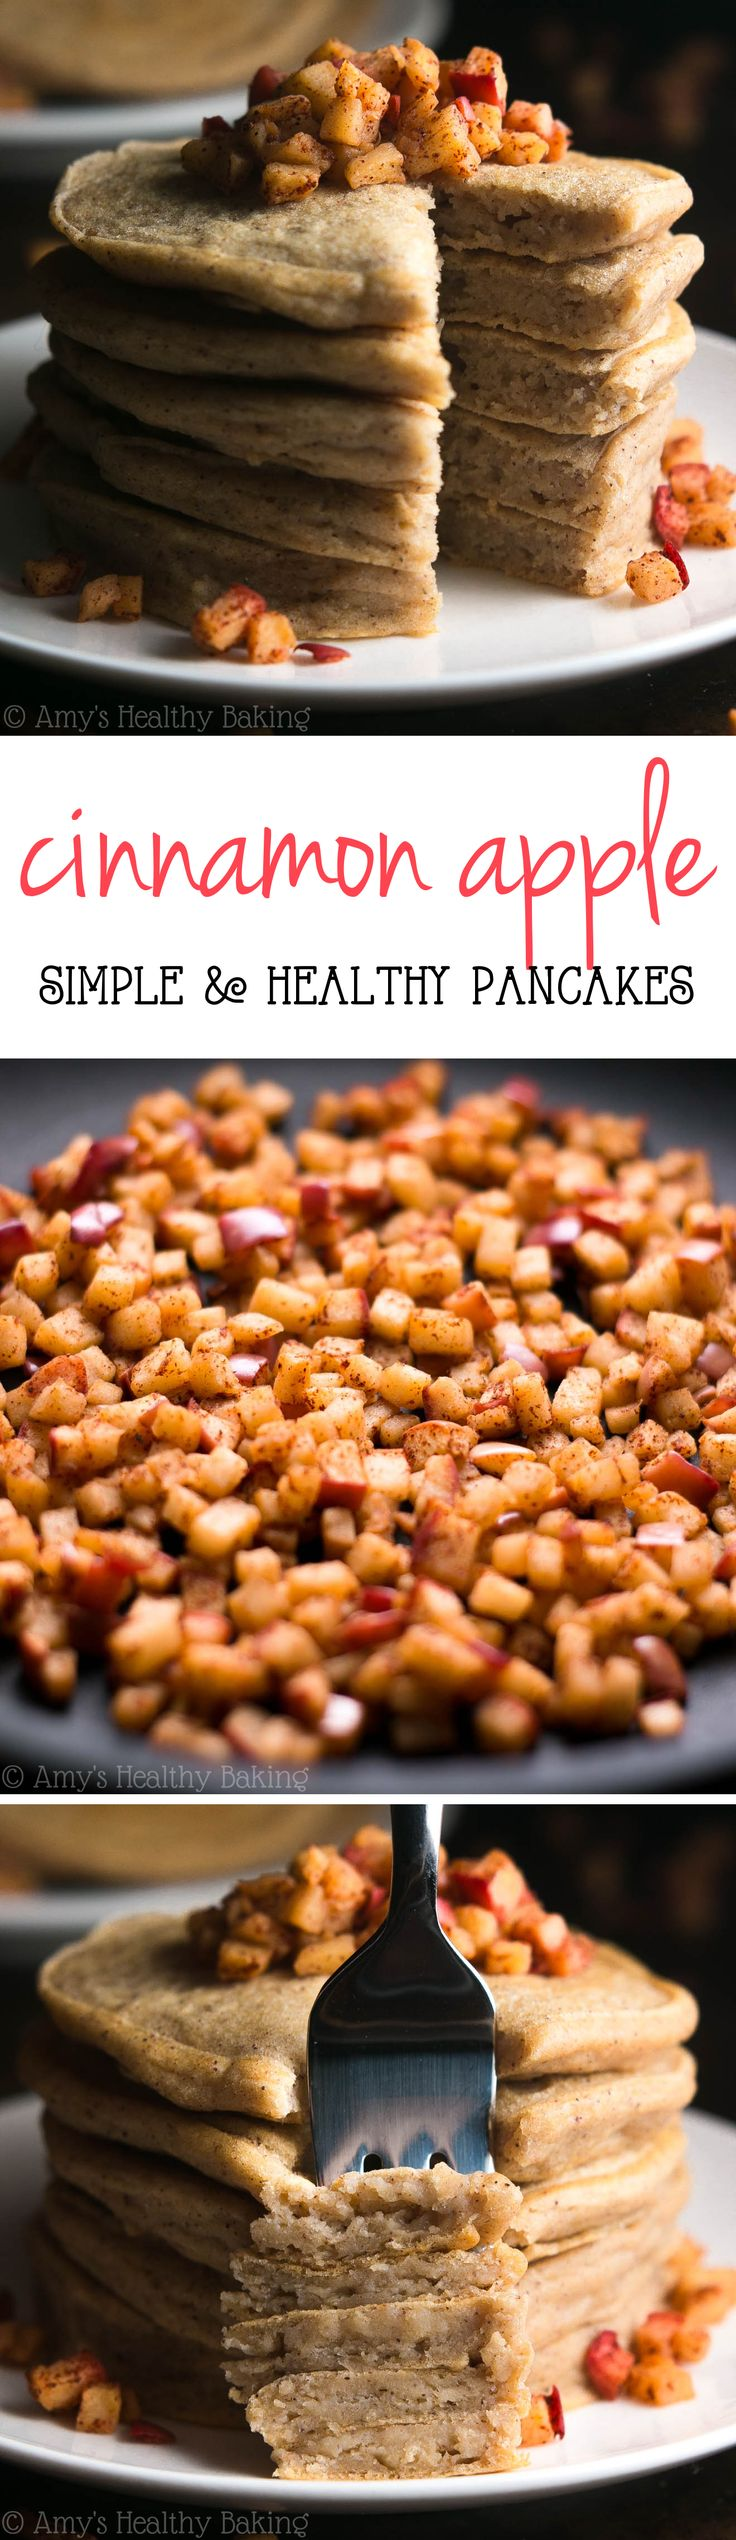 Healthy Cinnamon Apple Pancakes -- like eating apple pie for breakfast! And just 150 calories!